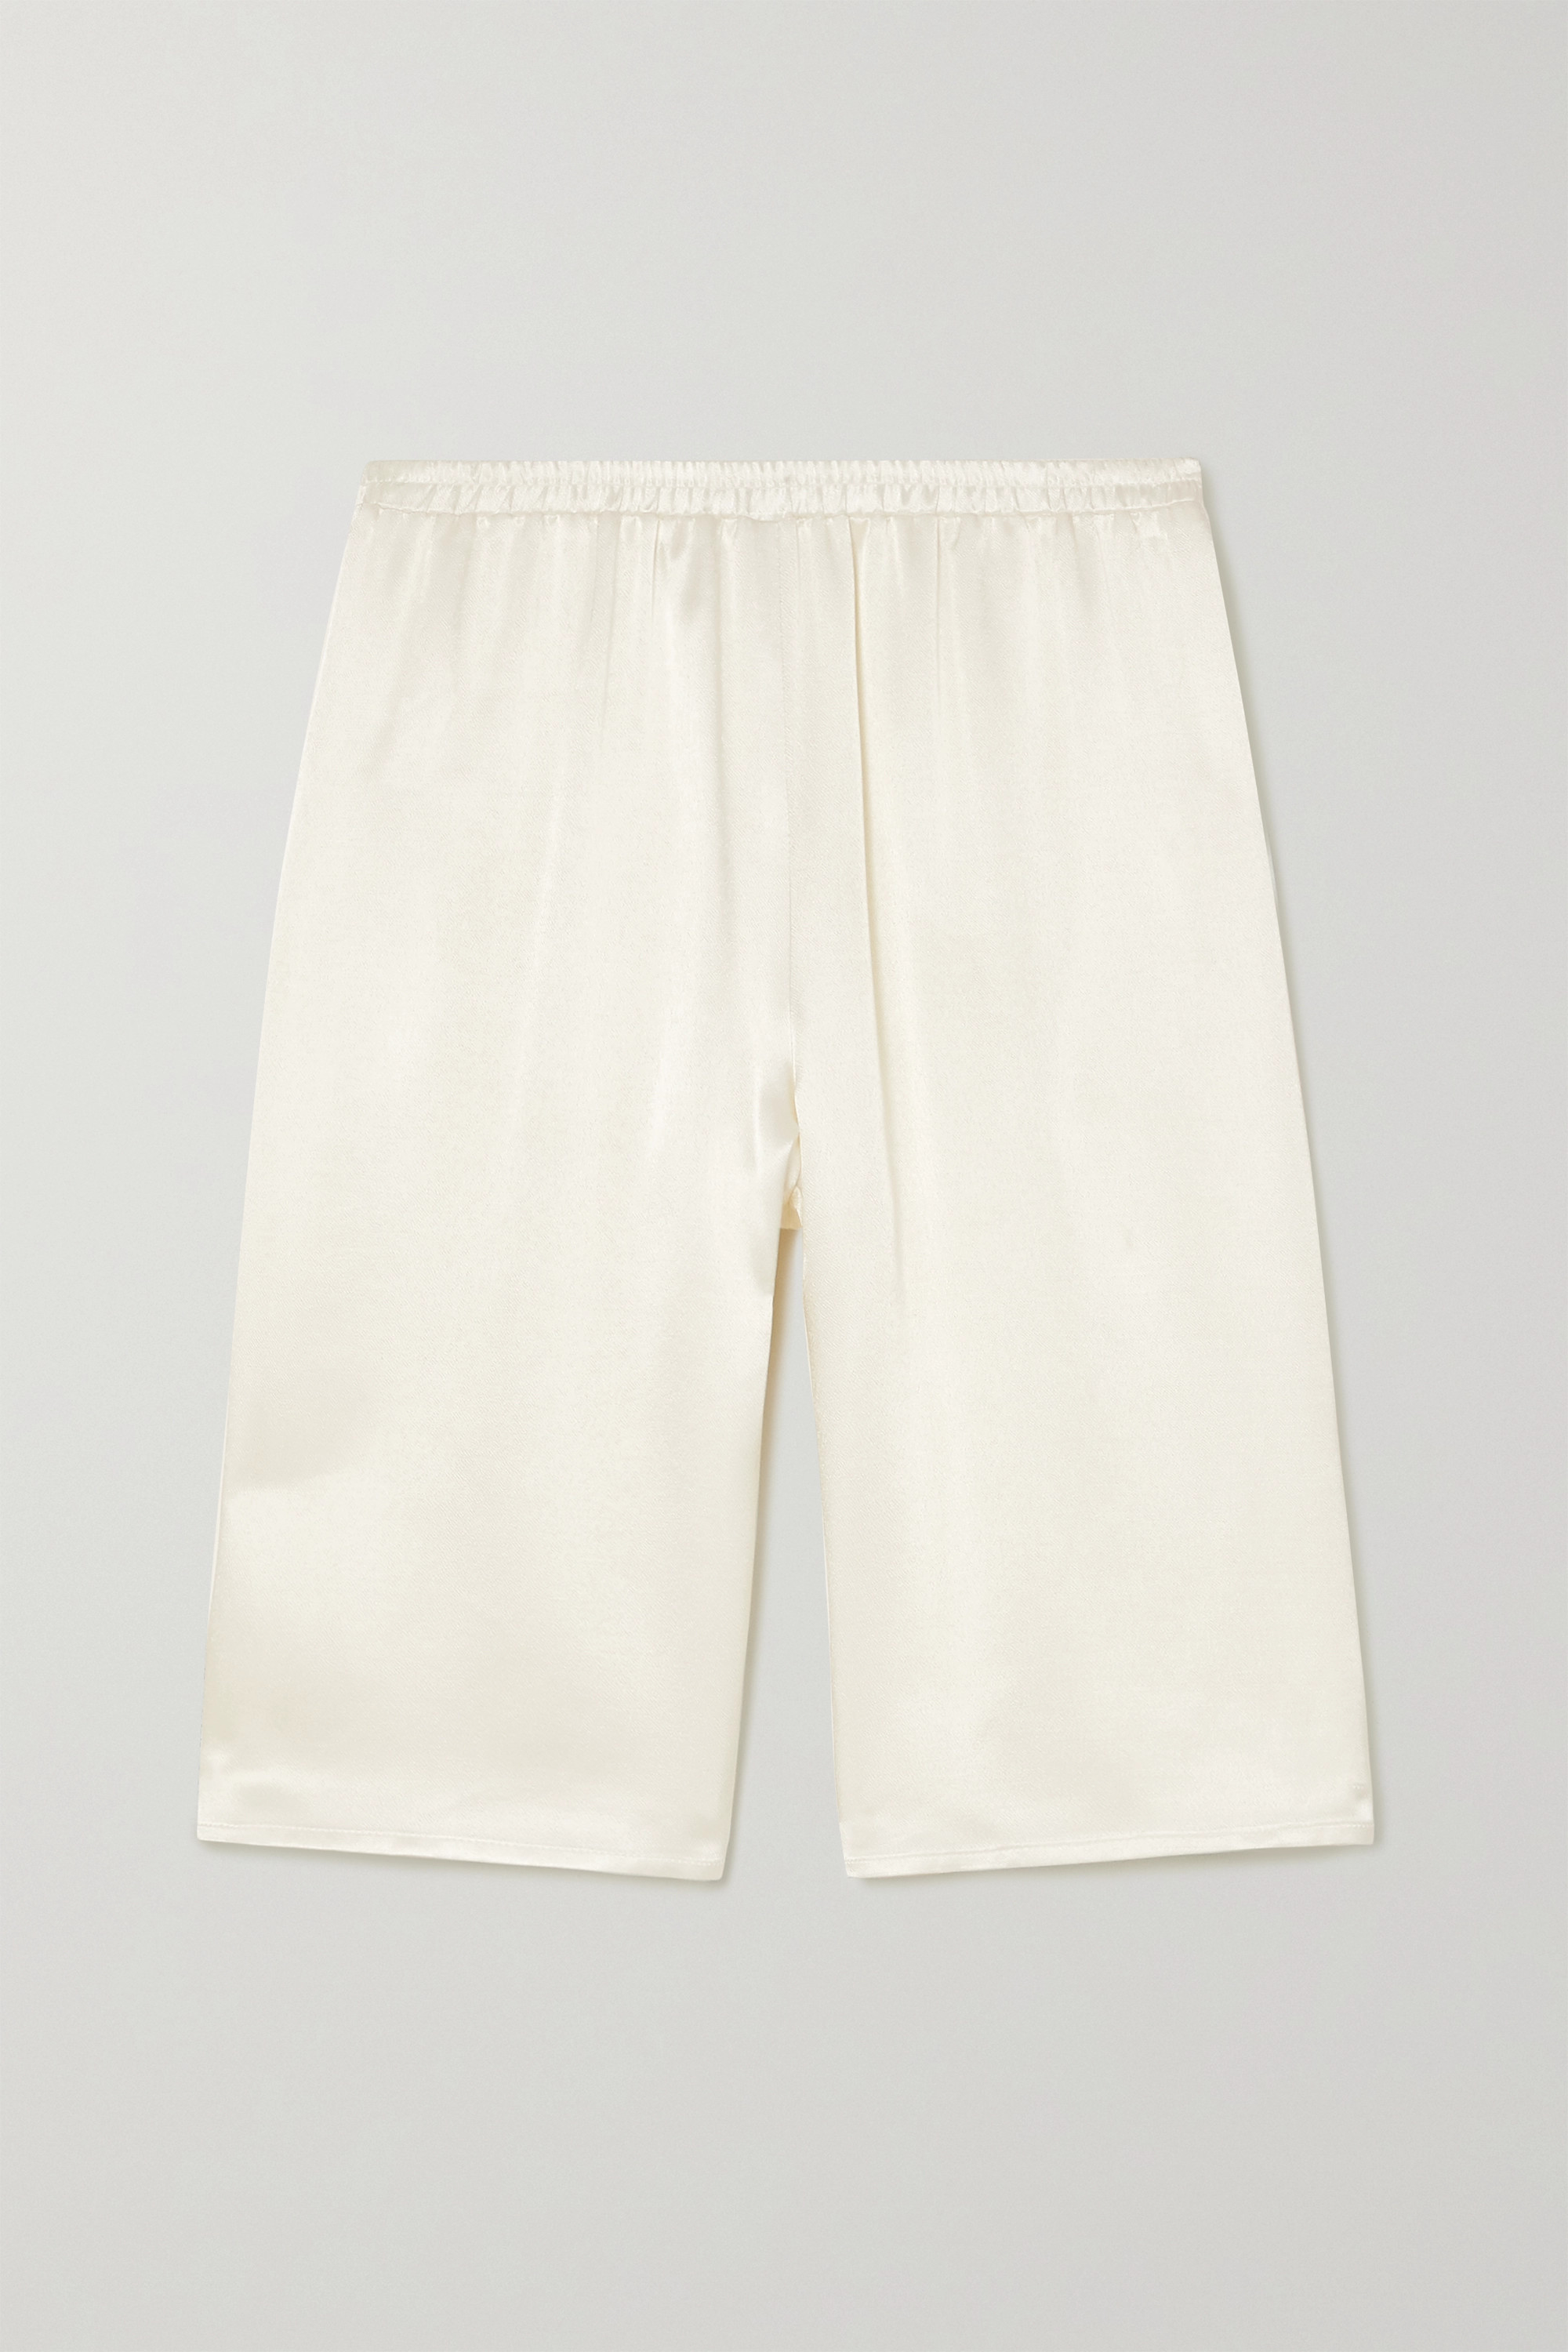 LAPOINTE Satin shorts